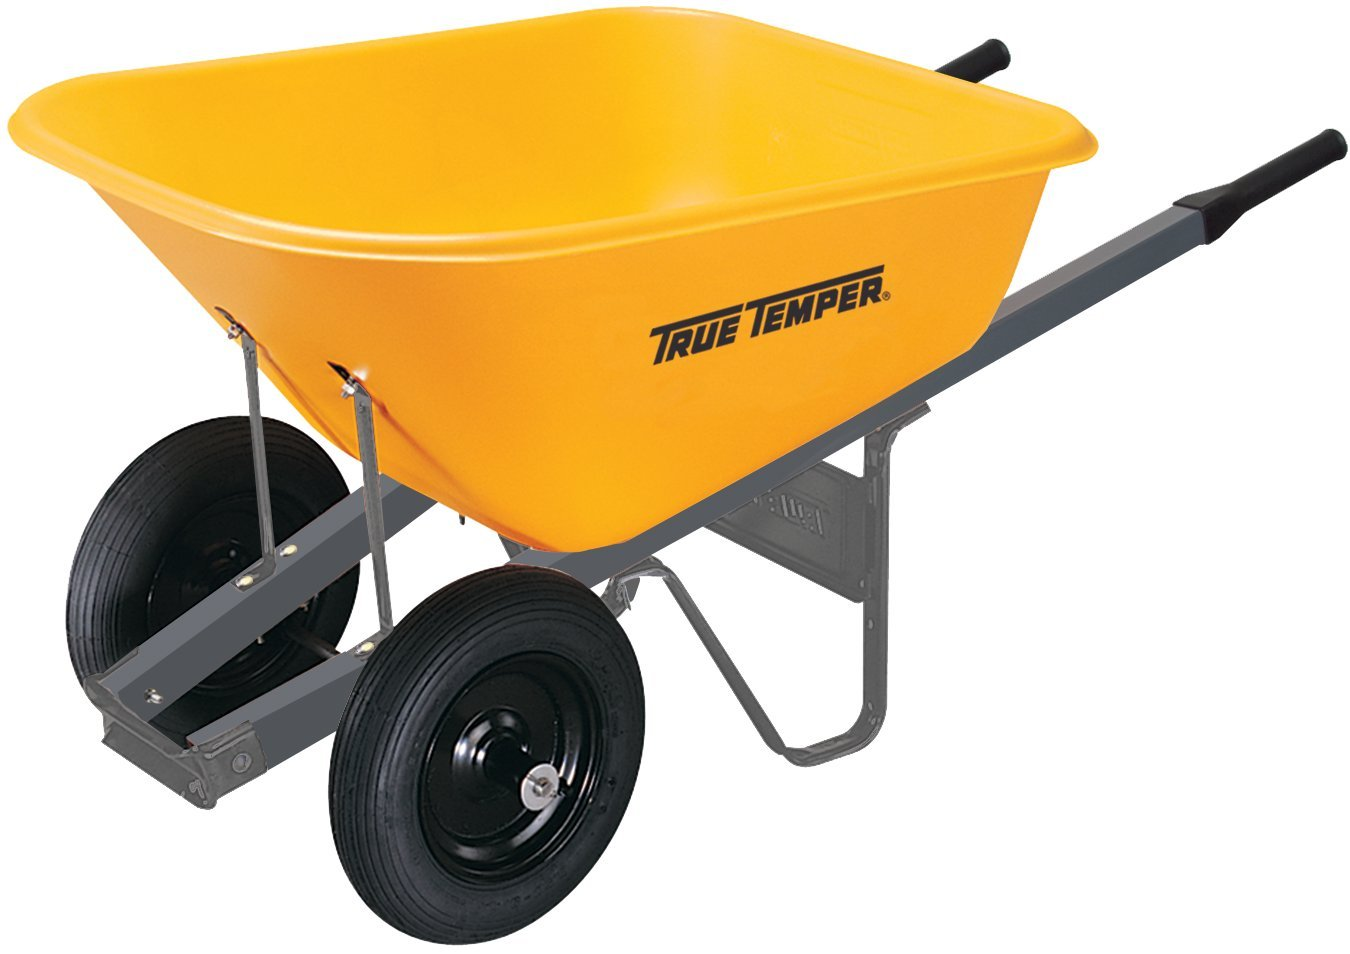 True Temper 6 Cubic Foot Wheelbarrow with Poly Tray and Dual Wheels - RP6DW8 by The AMES Companies, Inc (Image #1)